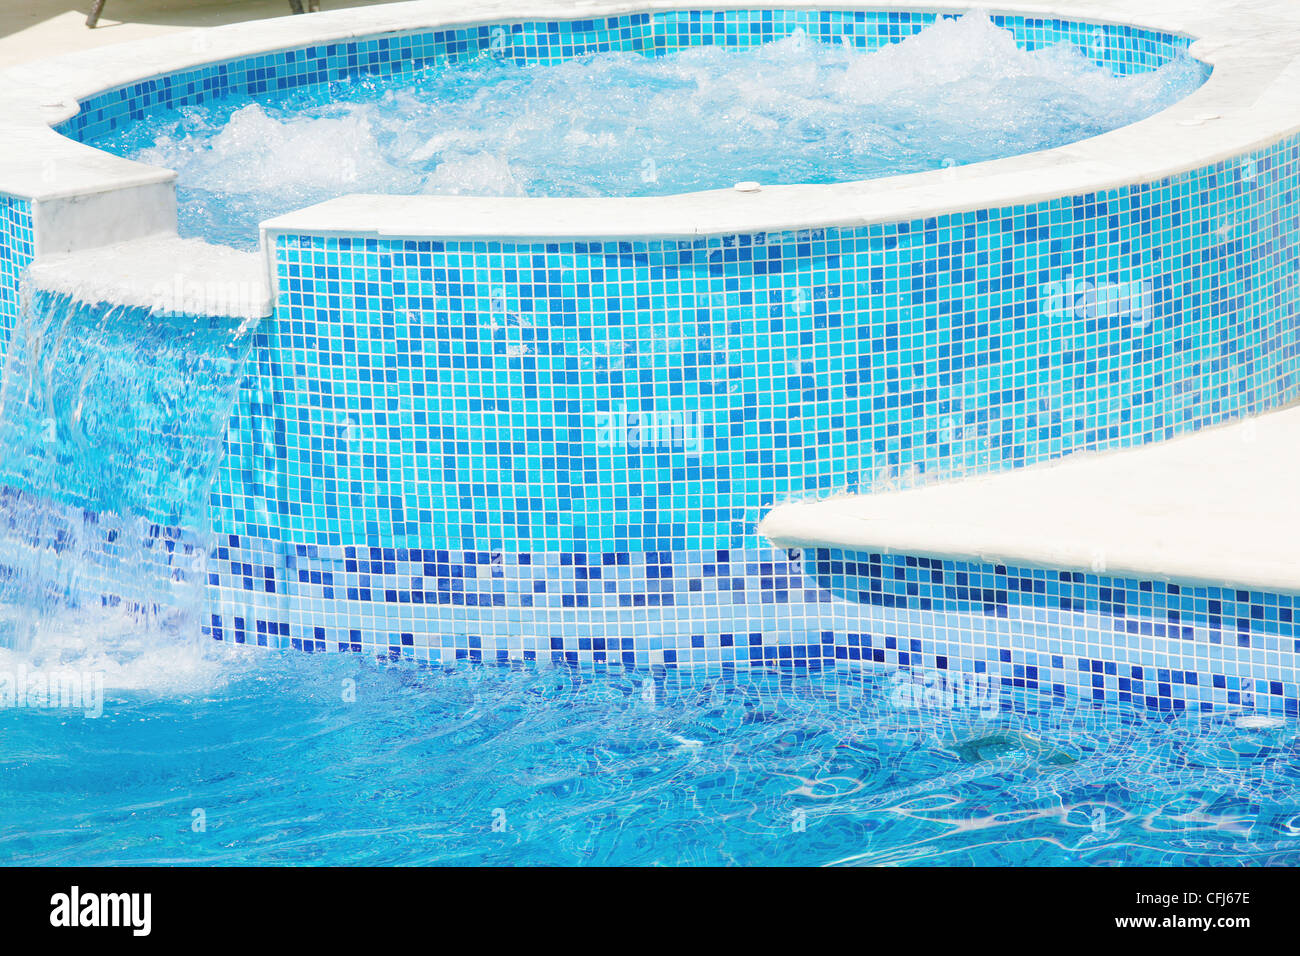 Jacuzzi In The Pool Empty Swimming Pool With Waterfall Jet And Jacuzzi In Action Stock